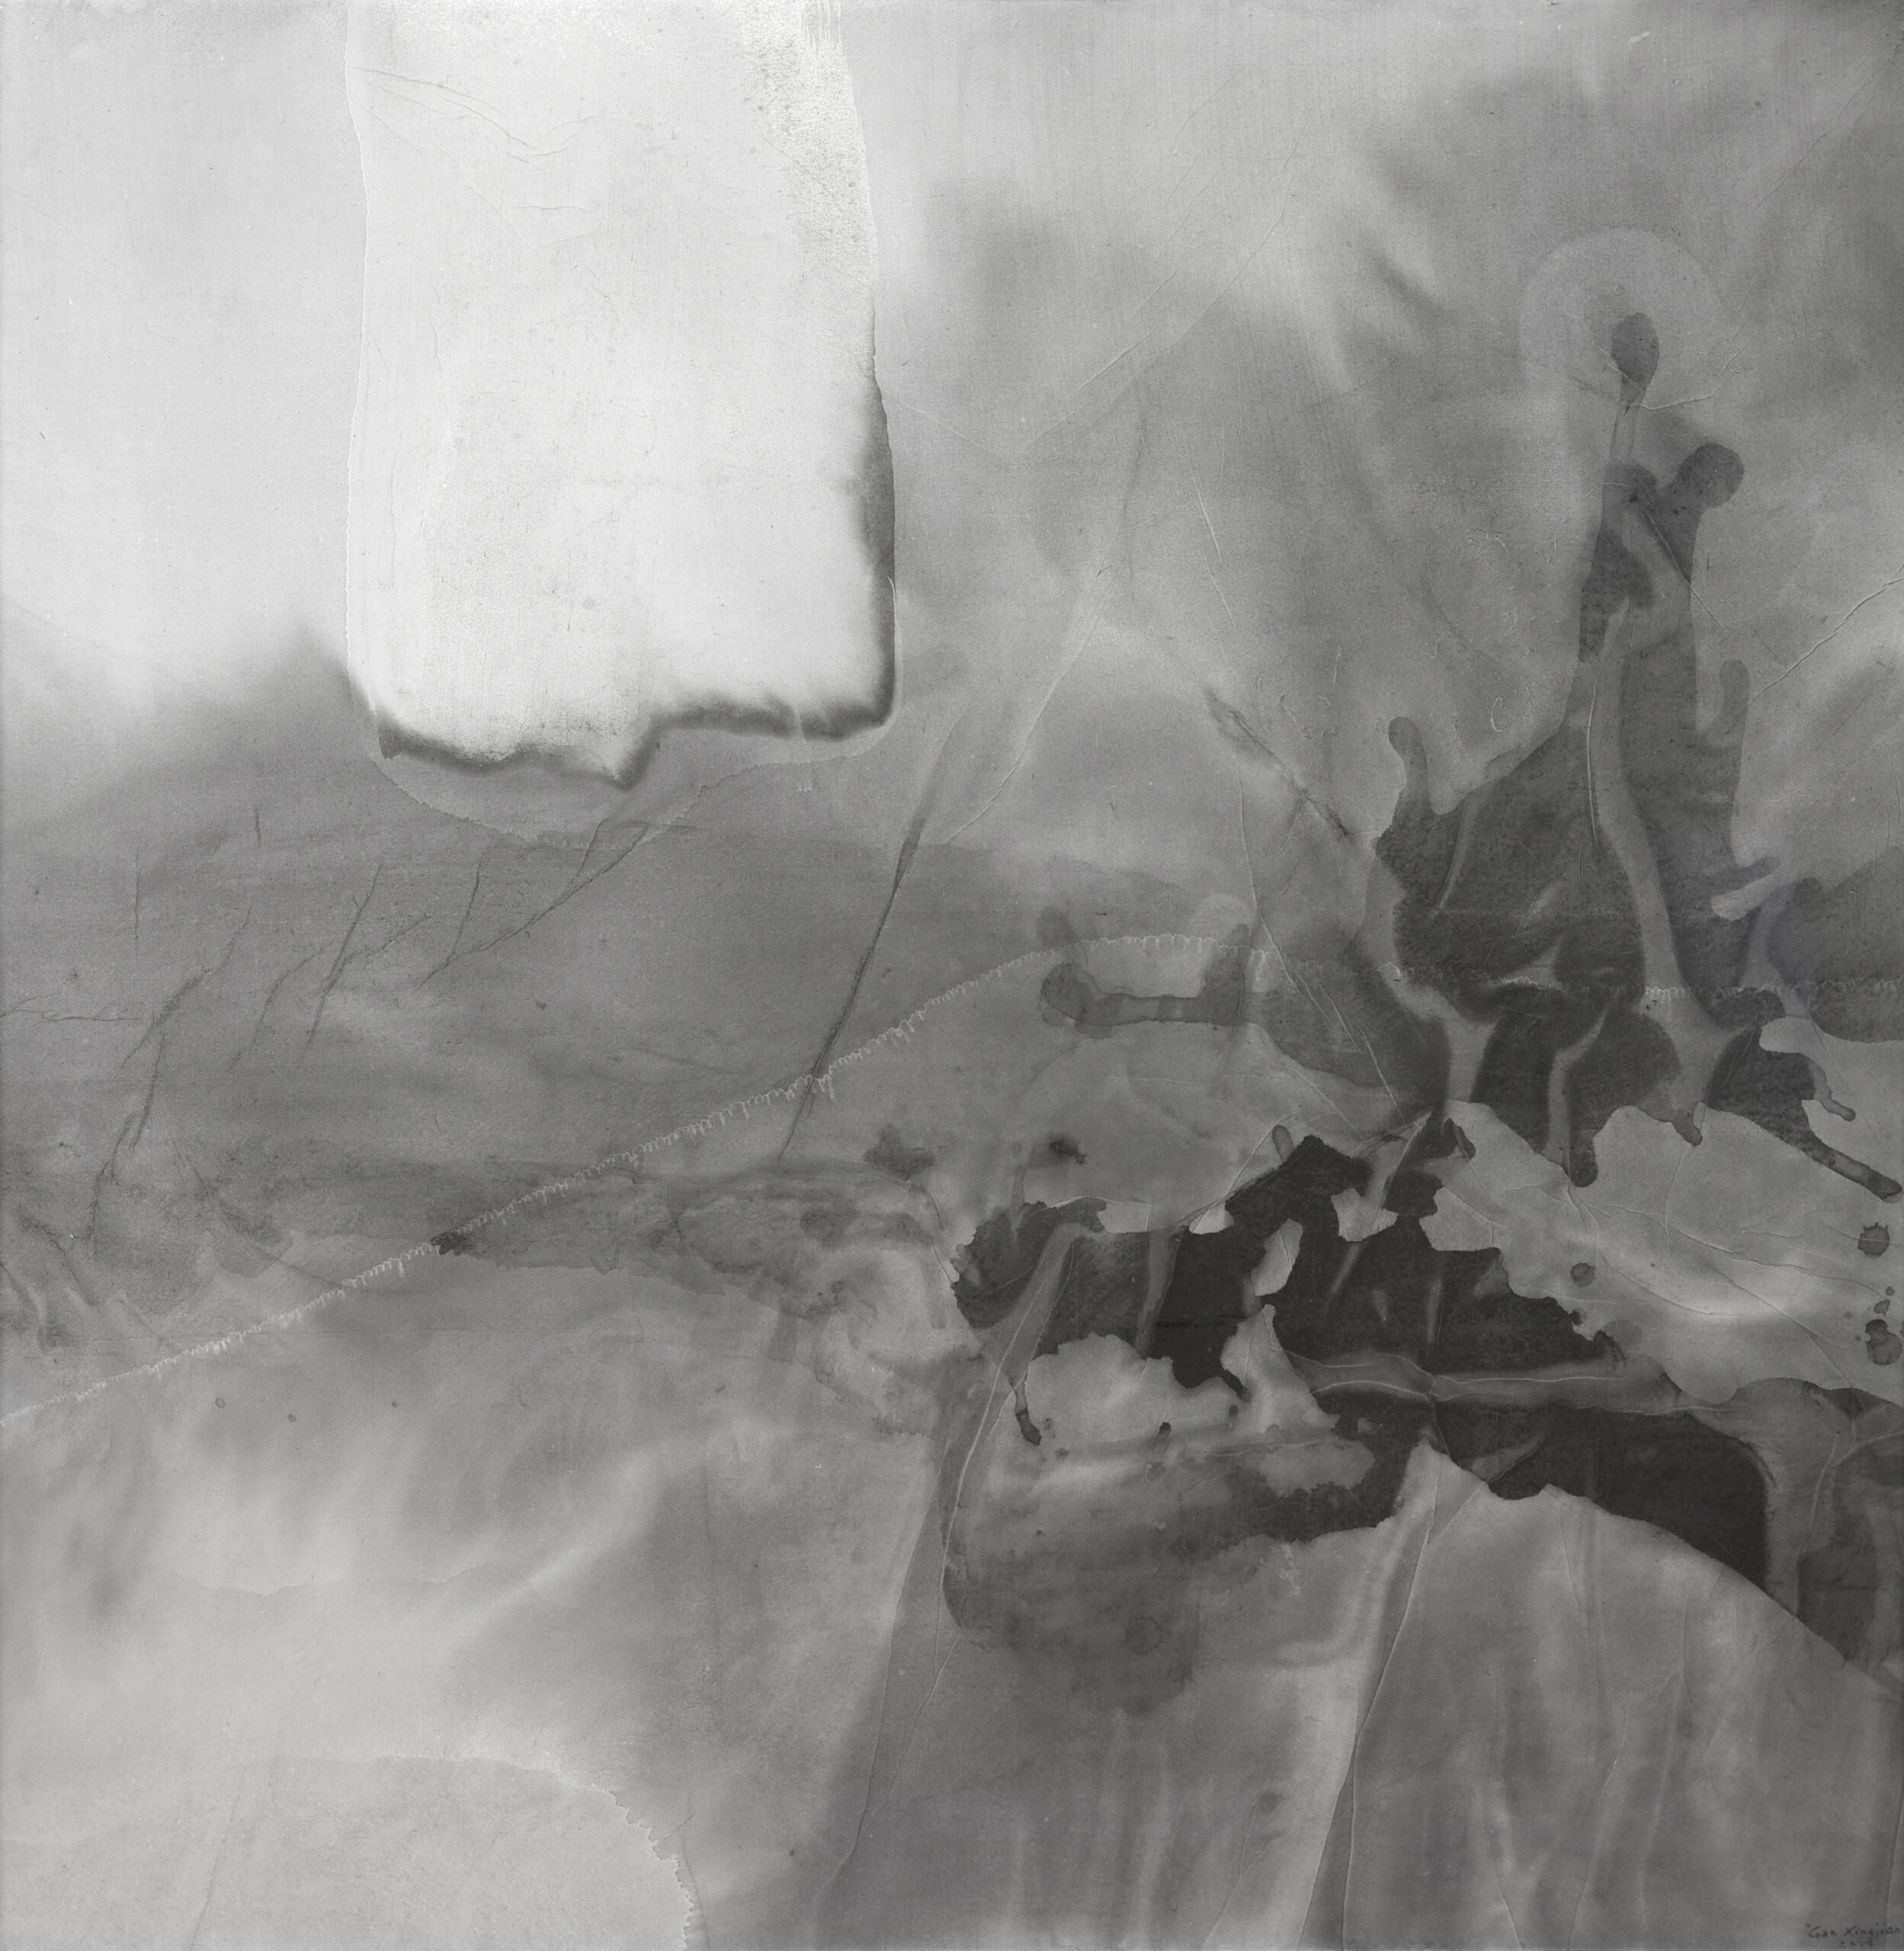 Gao Xingjian Improbable, 2014 Signed and dated lower right Ink on paper 91 x 90 cm